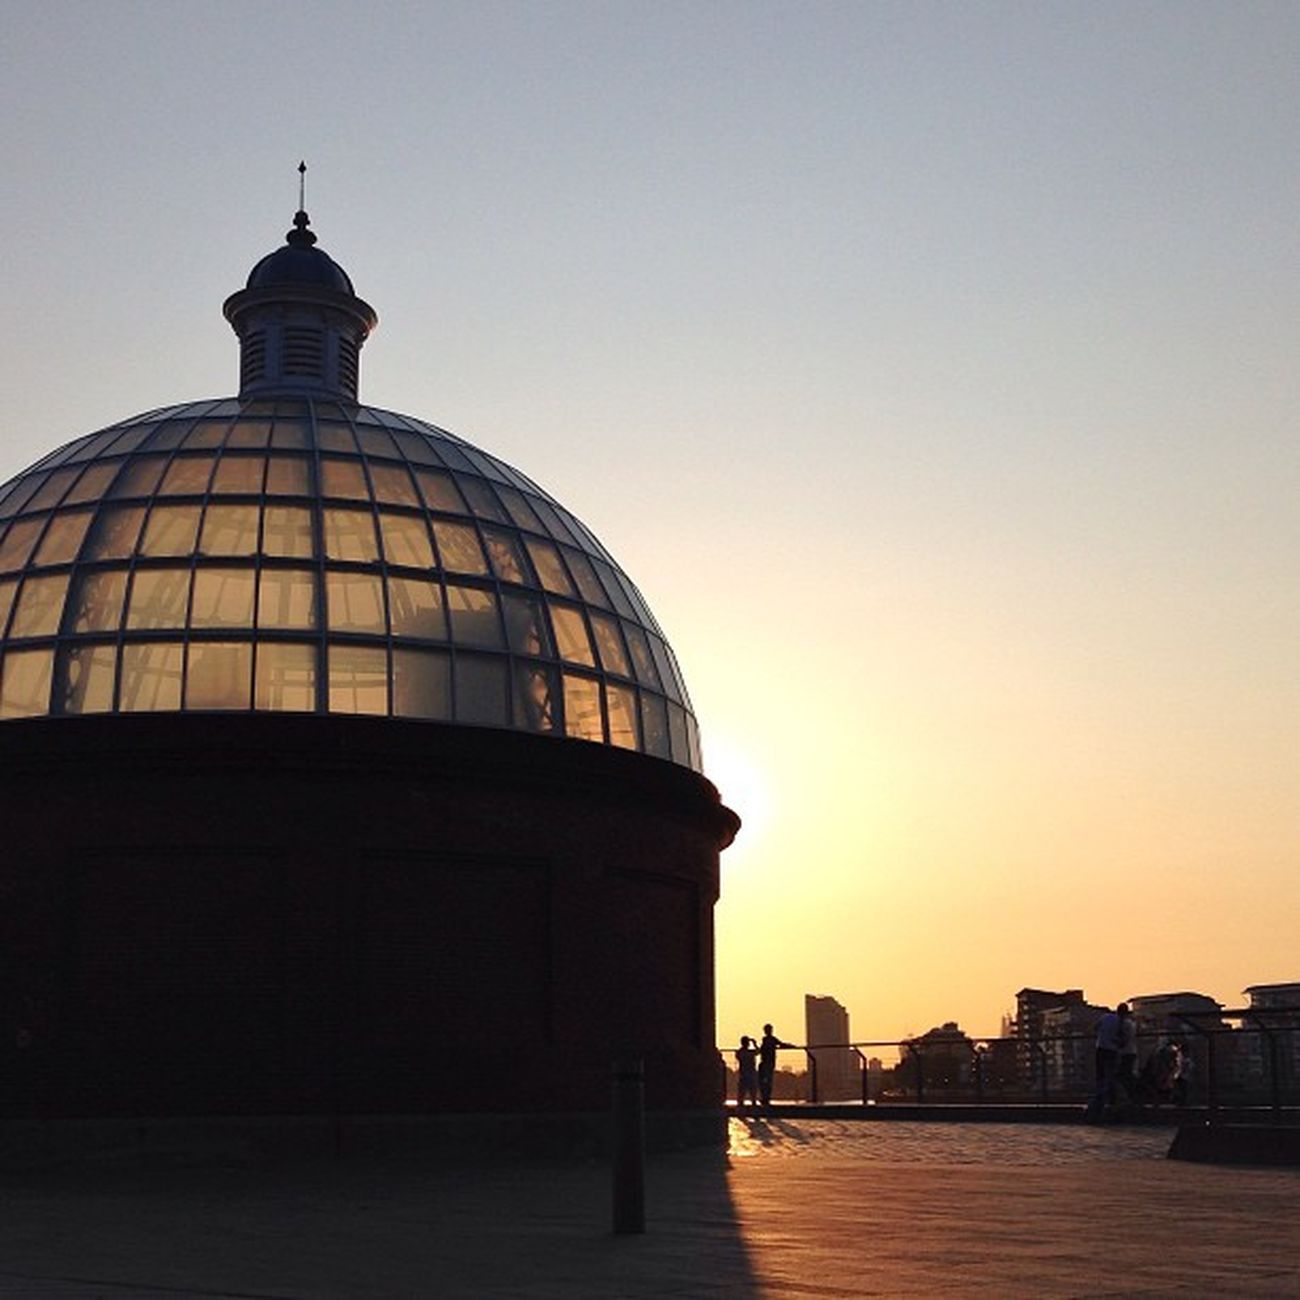 Just another stunning #sunset in #London ☀️???☀️ #greenwich #alan_in_london #gf_uk #gang_family #igers_london #insta_london #london_only #thisislondon #ic_cities #ic_cities_london #ig_england #love_london #gi_uk #ig_london #londonpop #allshots_ #aauk #y Ig_england Love_london Sunset Ic_cities_london London Ig_london Greenwich Aauk Gang_family Yourturnbritain Londonpop Allshots_ London_only Ic_cities Gf_uk Alan_in_london Insta_london Thisislondon Gi_uk Igers_london